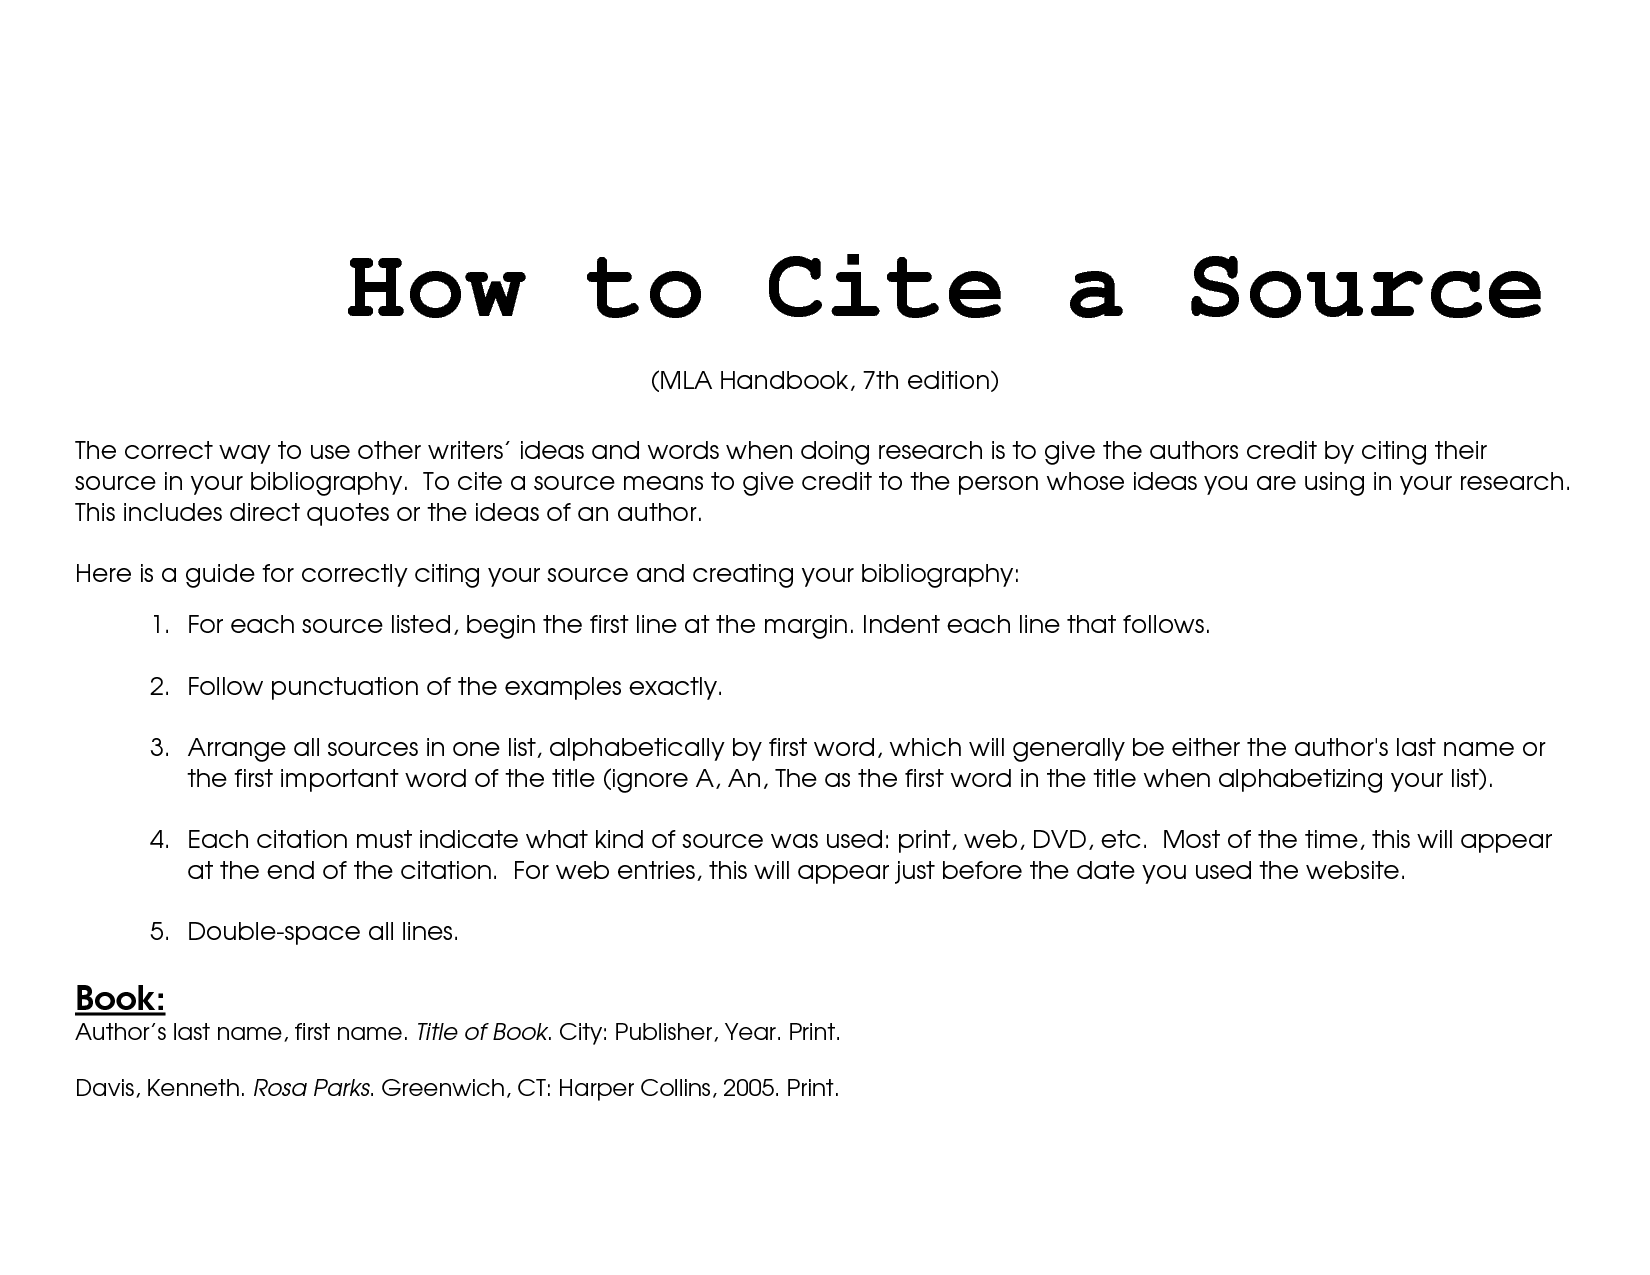 cite movie quotes in essays  quotesgram